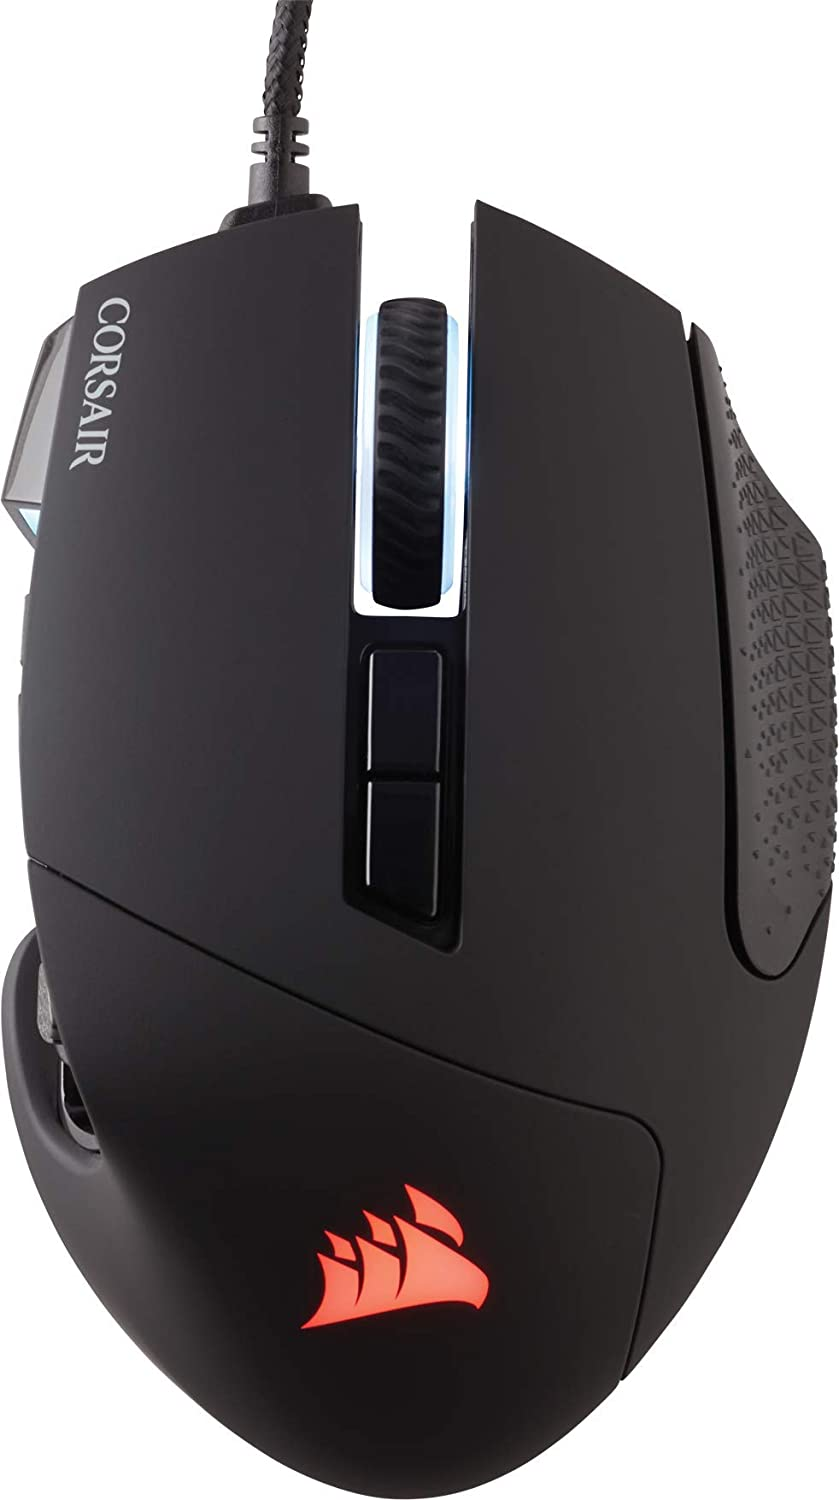 Corsair Scimitar Pro RGB Optical MMO Gaming Mouse (16,000 DPI Optical  Sensor, 12 Programmable Side Buttons, 4-Zone RGB Multicolour Lighting,  On-board